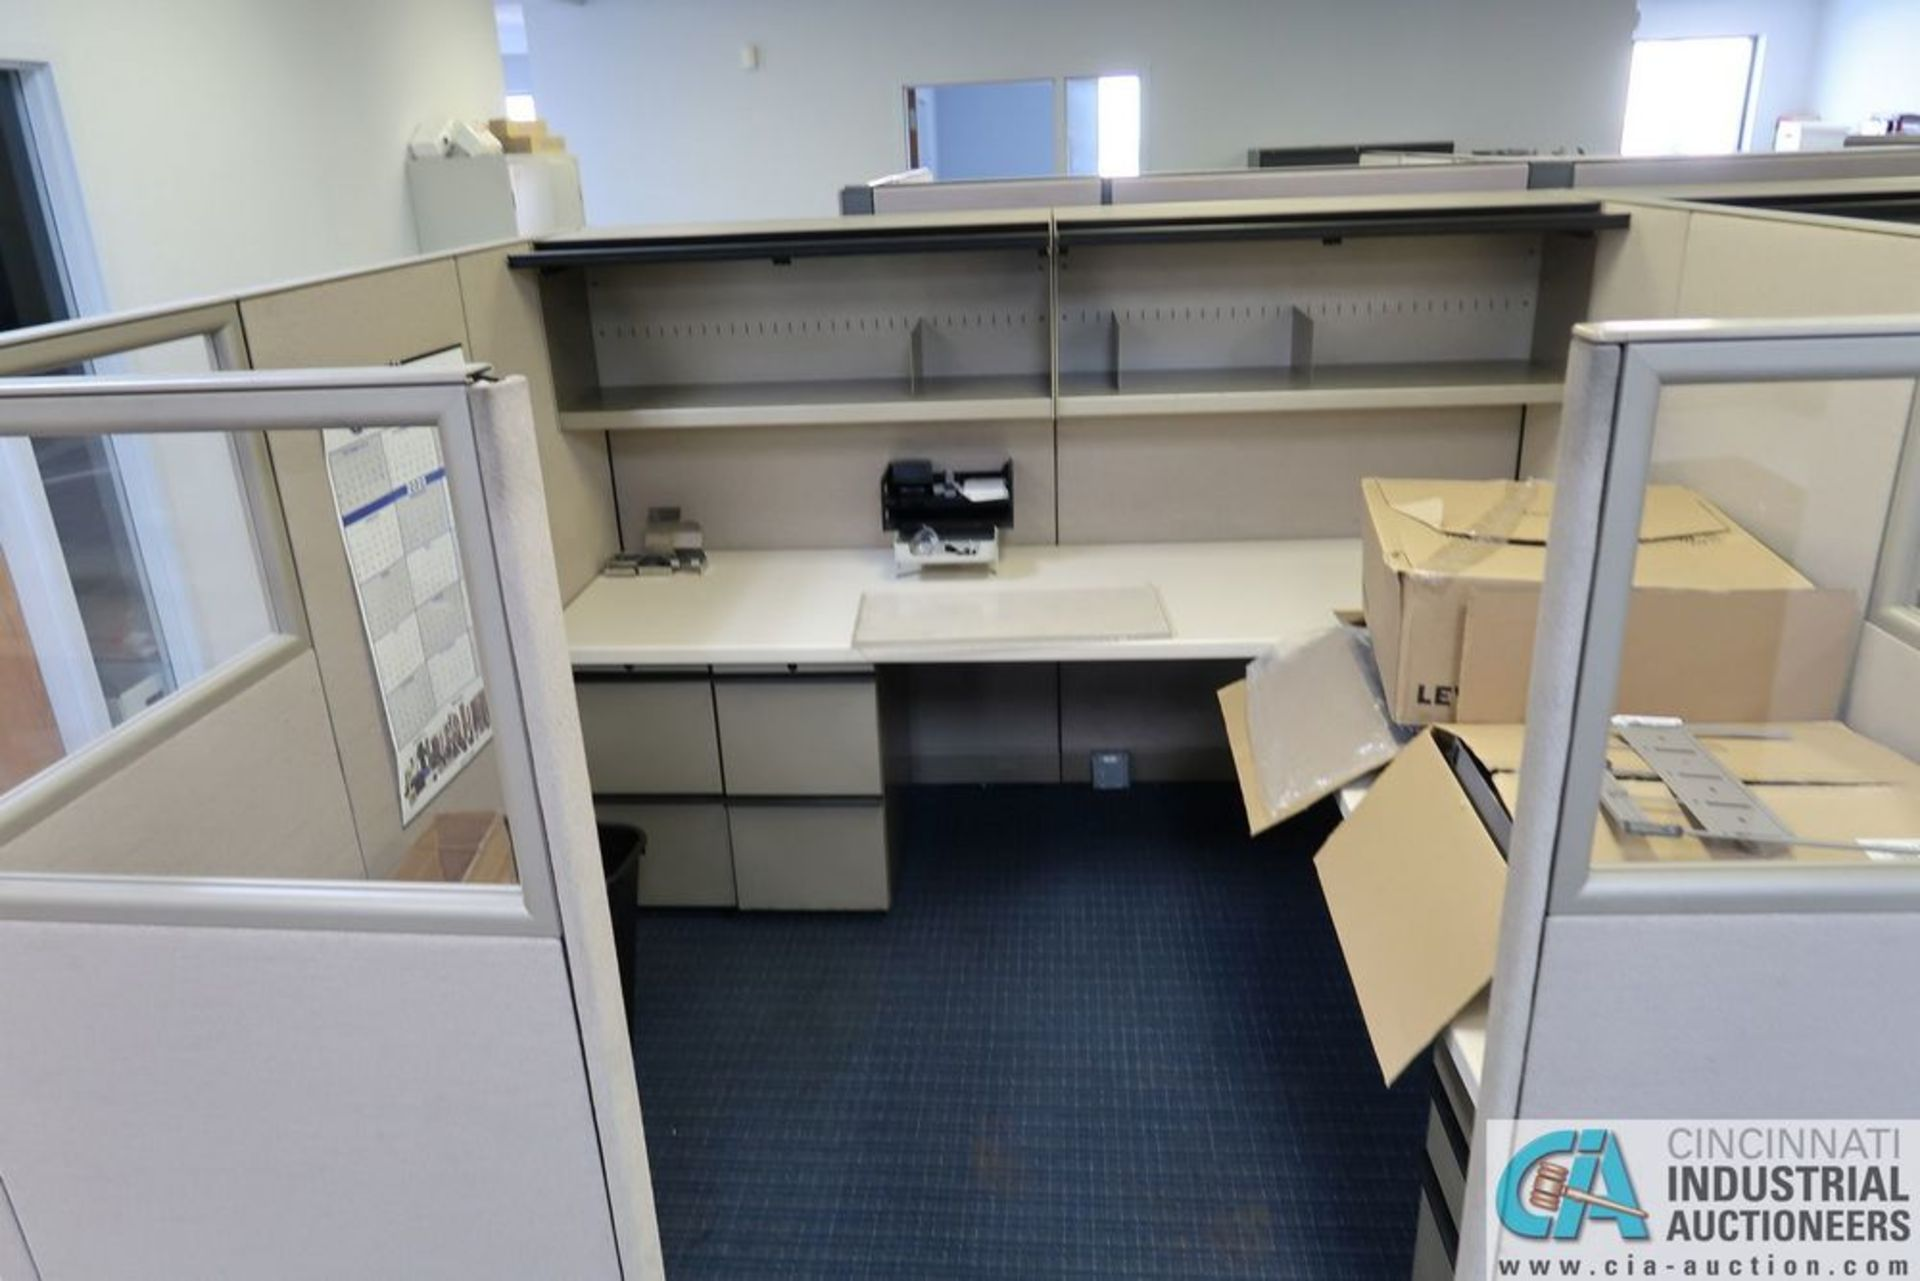 "(LOT) OFFICE CUBICLES, (2) 72"" X 72"", (2) 100"" X 92"", (2) 112"" X 96"", (1) 216"" X 72"" - Image 7 of 10"